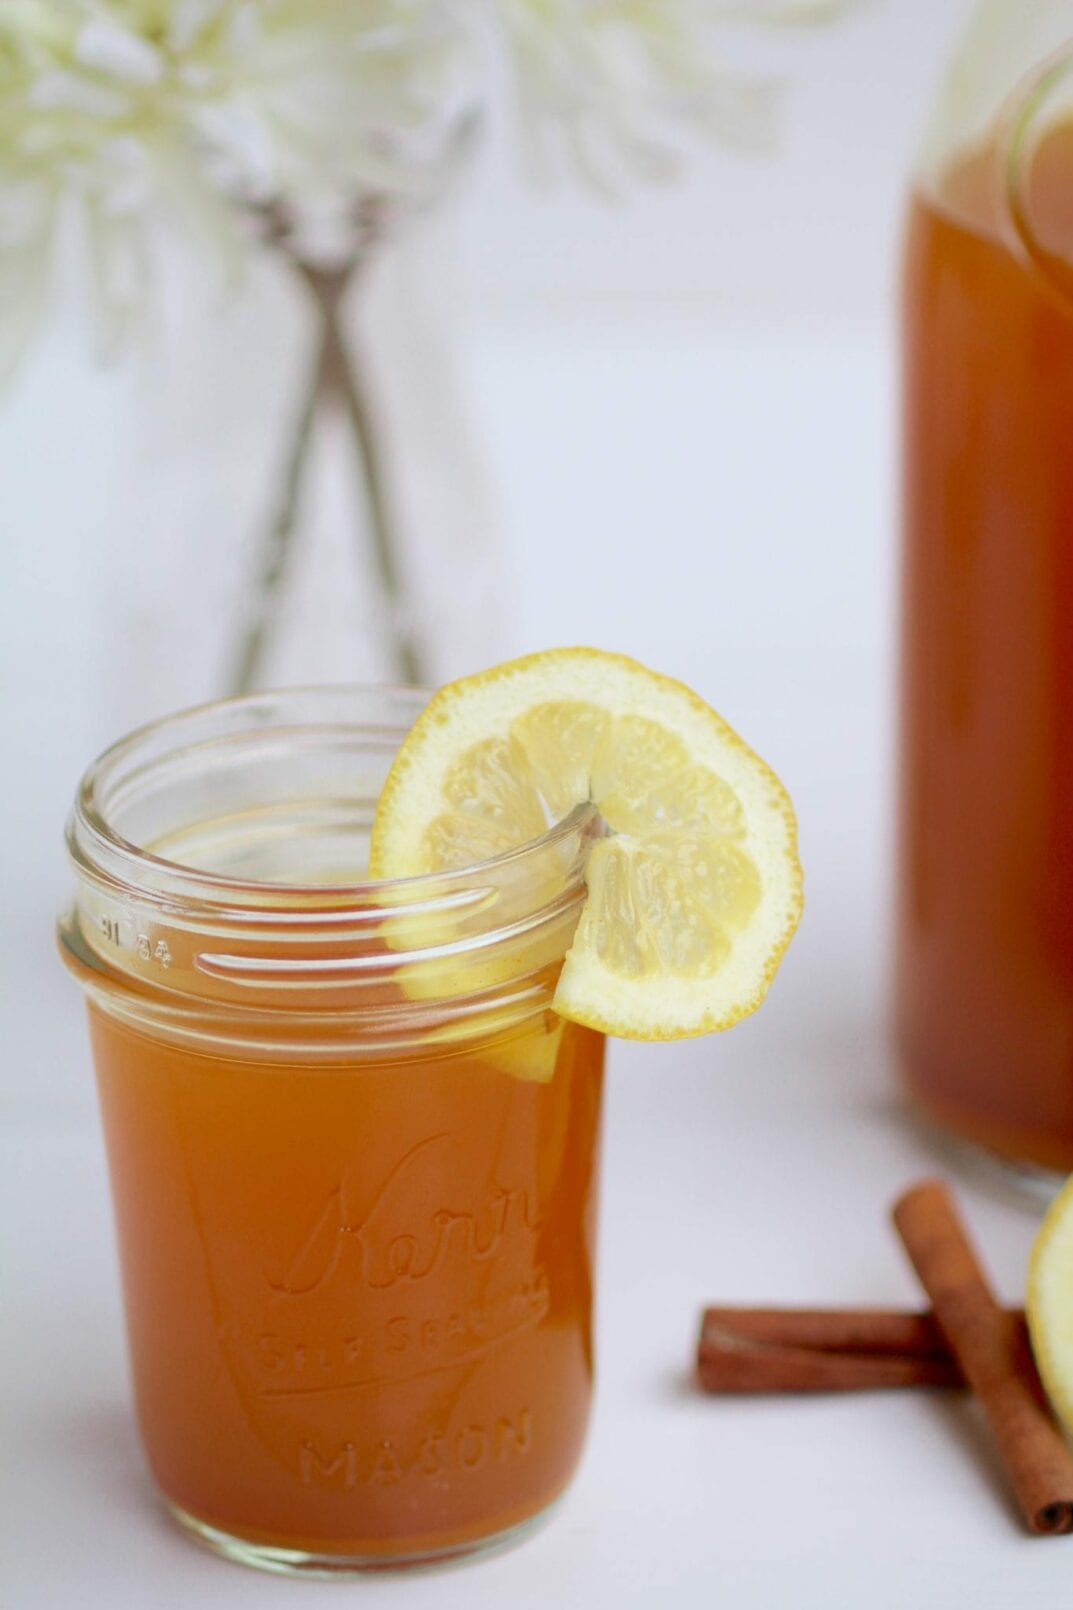 daily detox lemon, ginger & turmeric tea | skip the eye-watering shots of apple cider vinegar and start the day with this flavorful and healing lemon, ginger & turmeric detox tea. | www.nourishmovelove.com